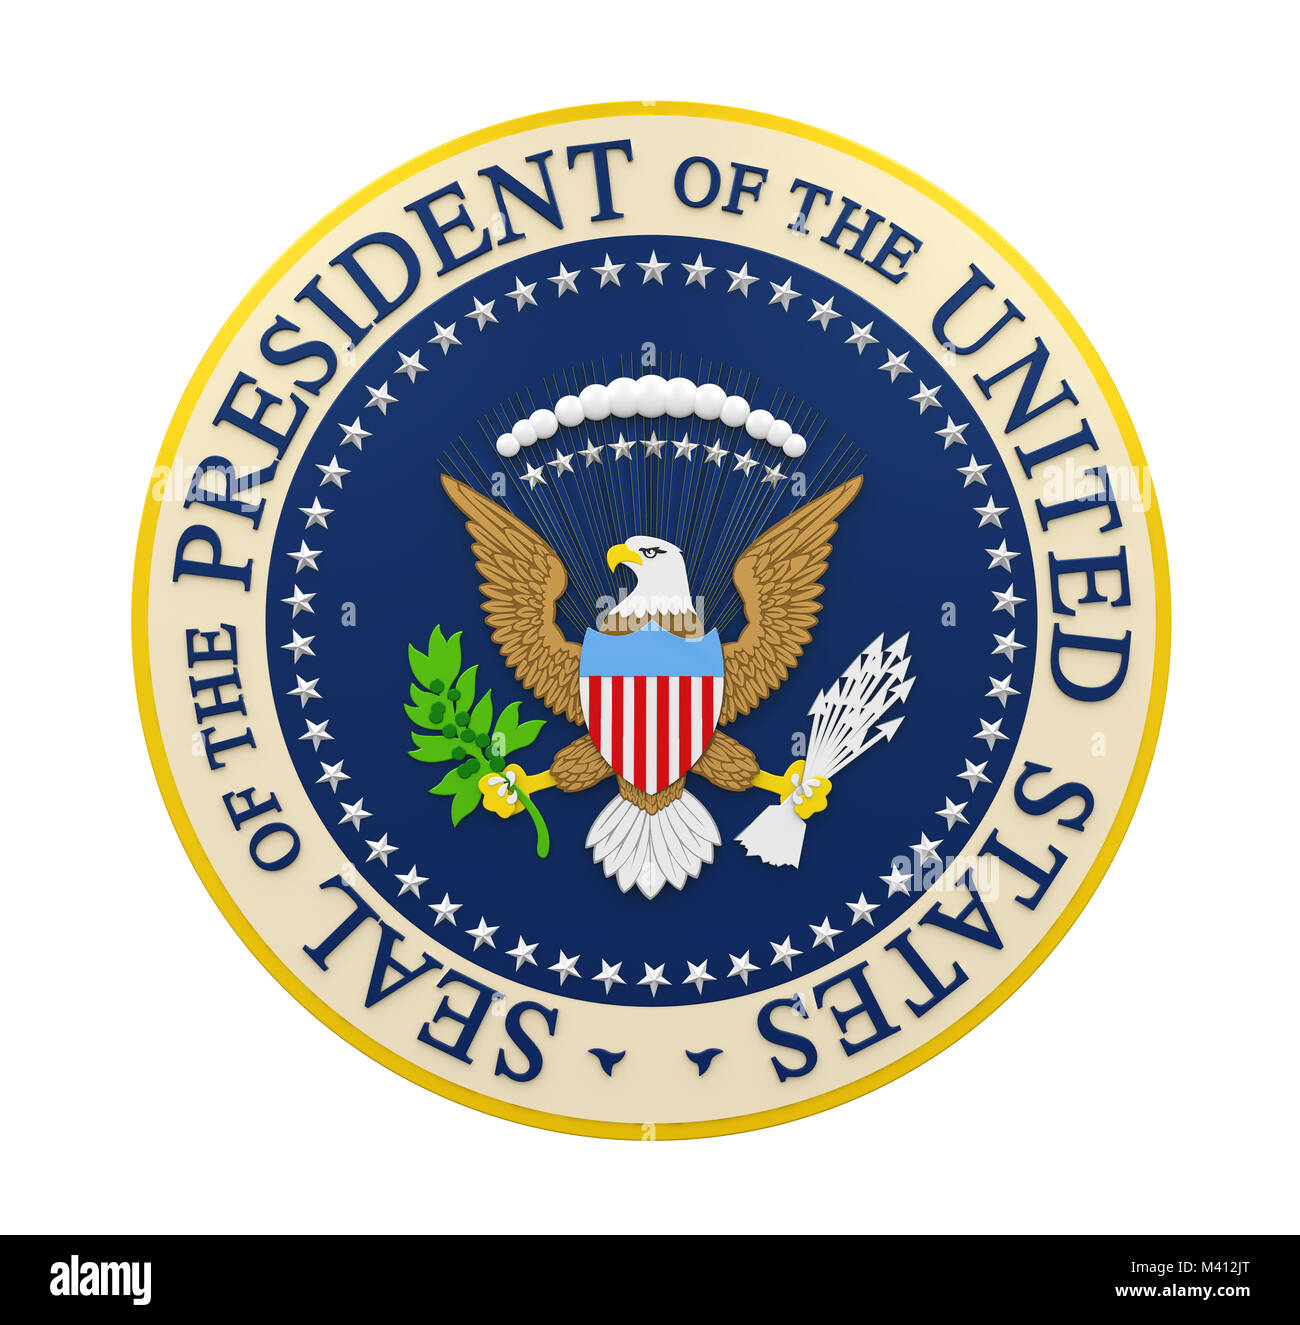 Seal of the President of the United States Isolated - Stock Image